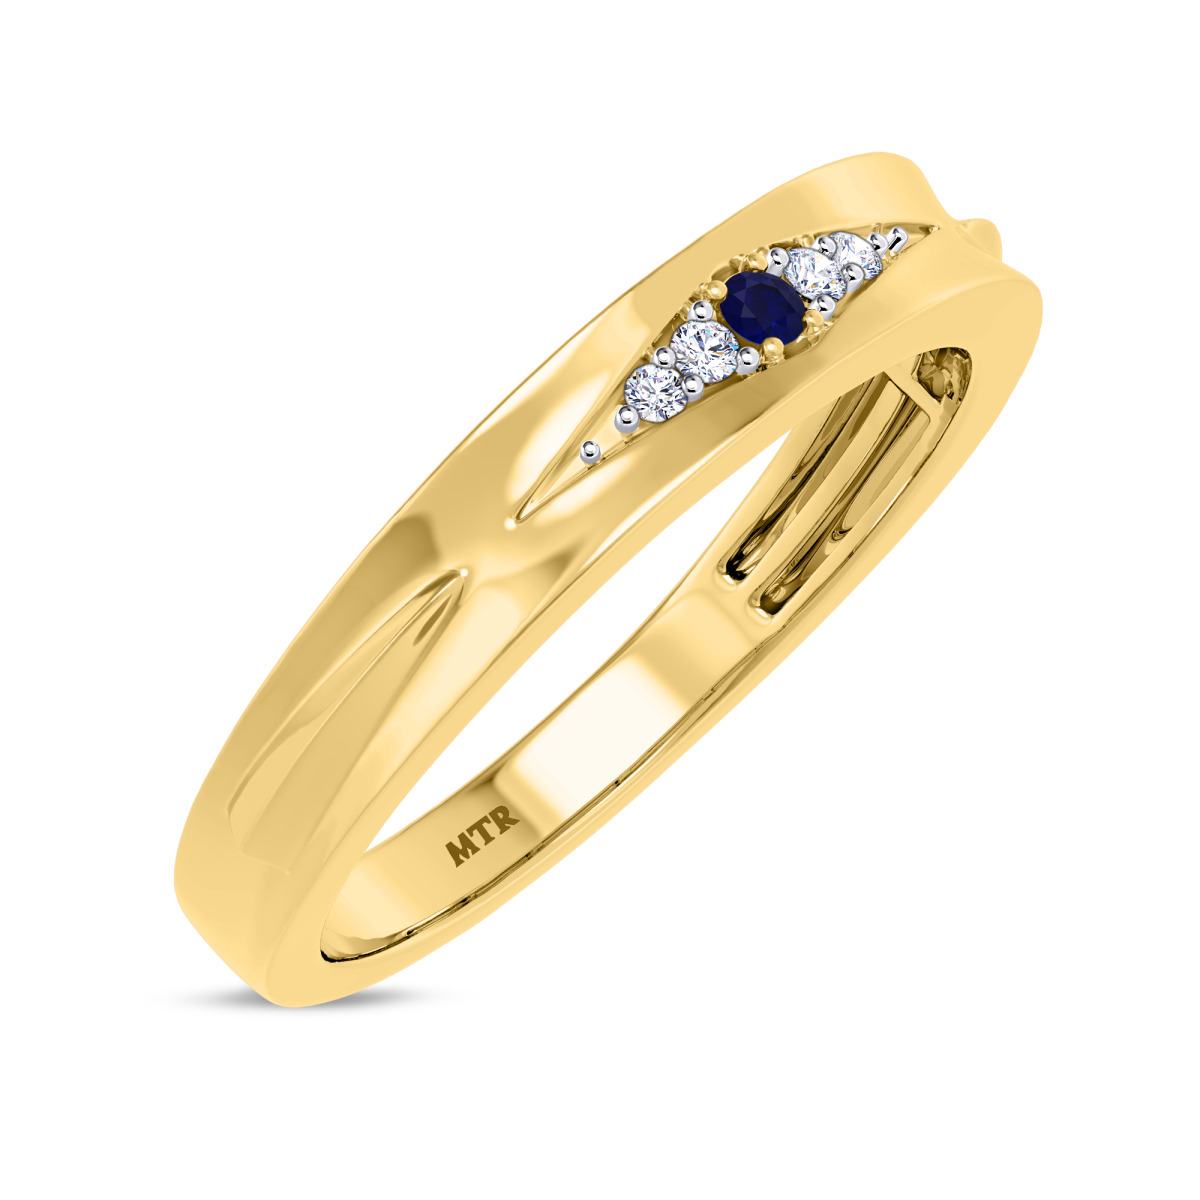 1/10 Carat T.W. Sapphire Mens Wedding Band 14K Yellow Gold